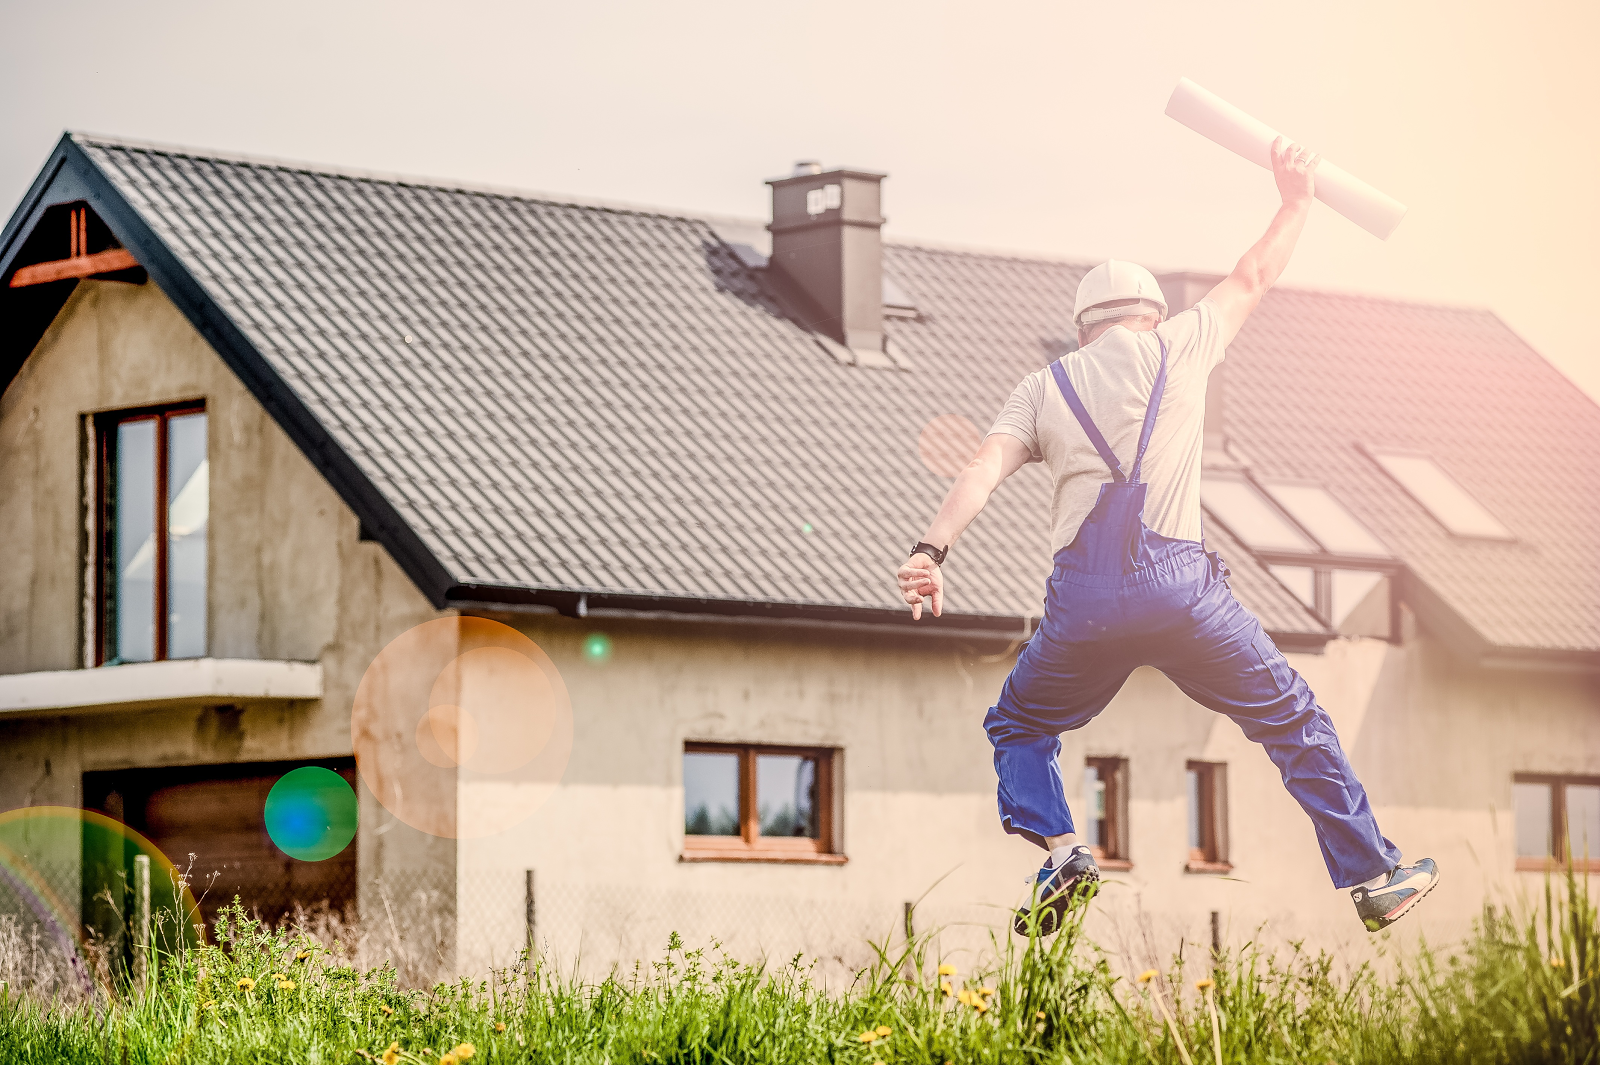 dream home plans in hand and jumping for joy